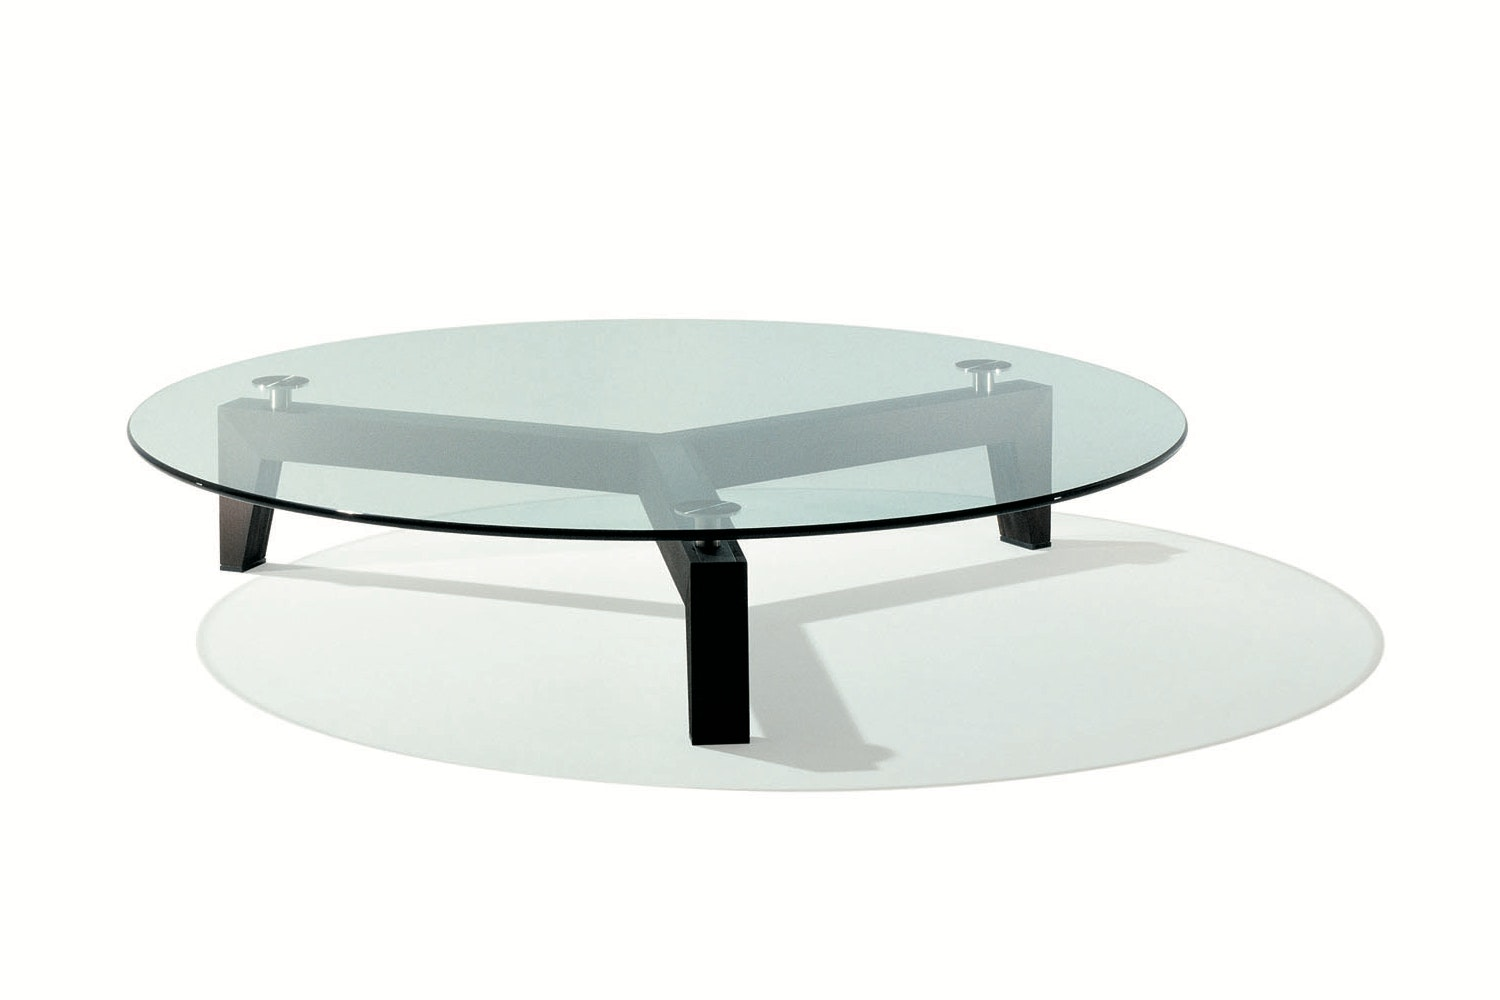 Artu Tavolino Coffee Table by Massimo Scolari for Giorgetti